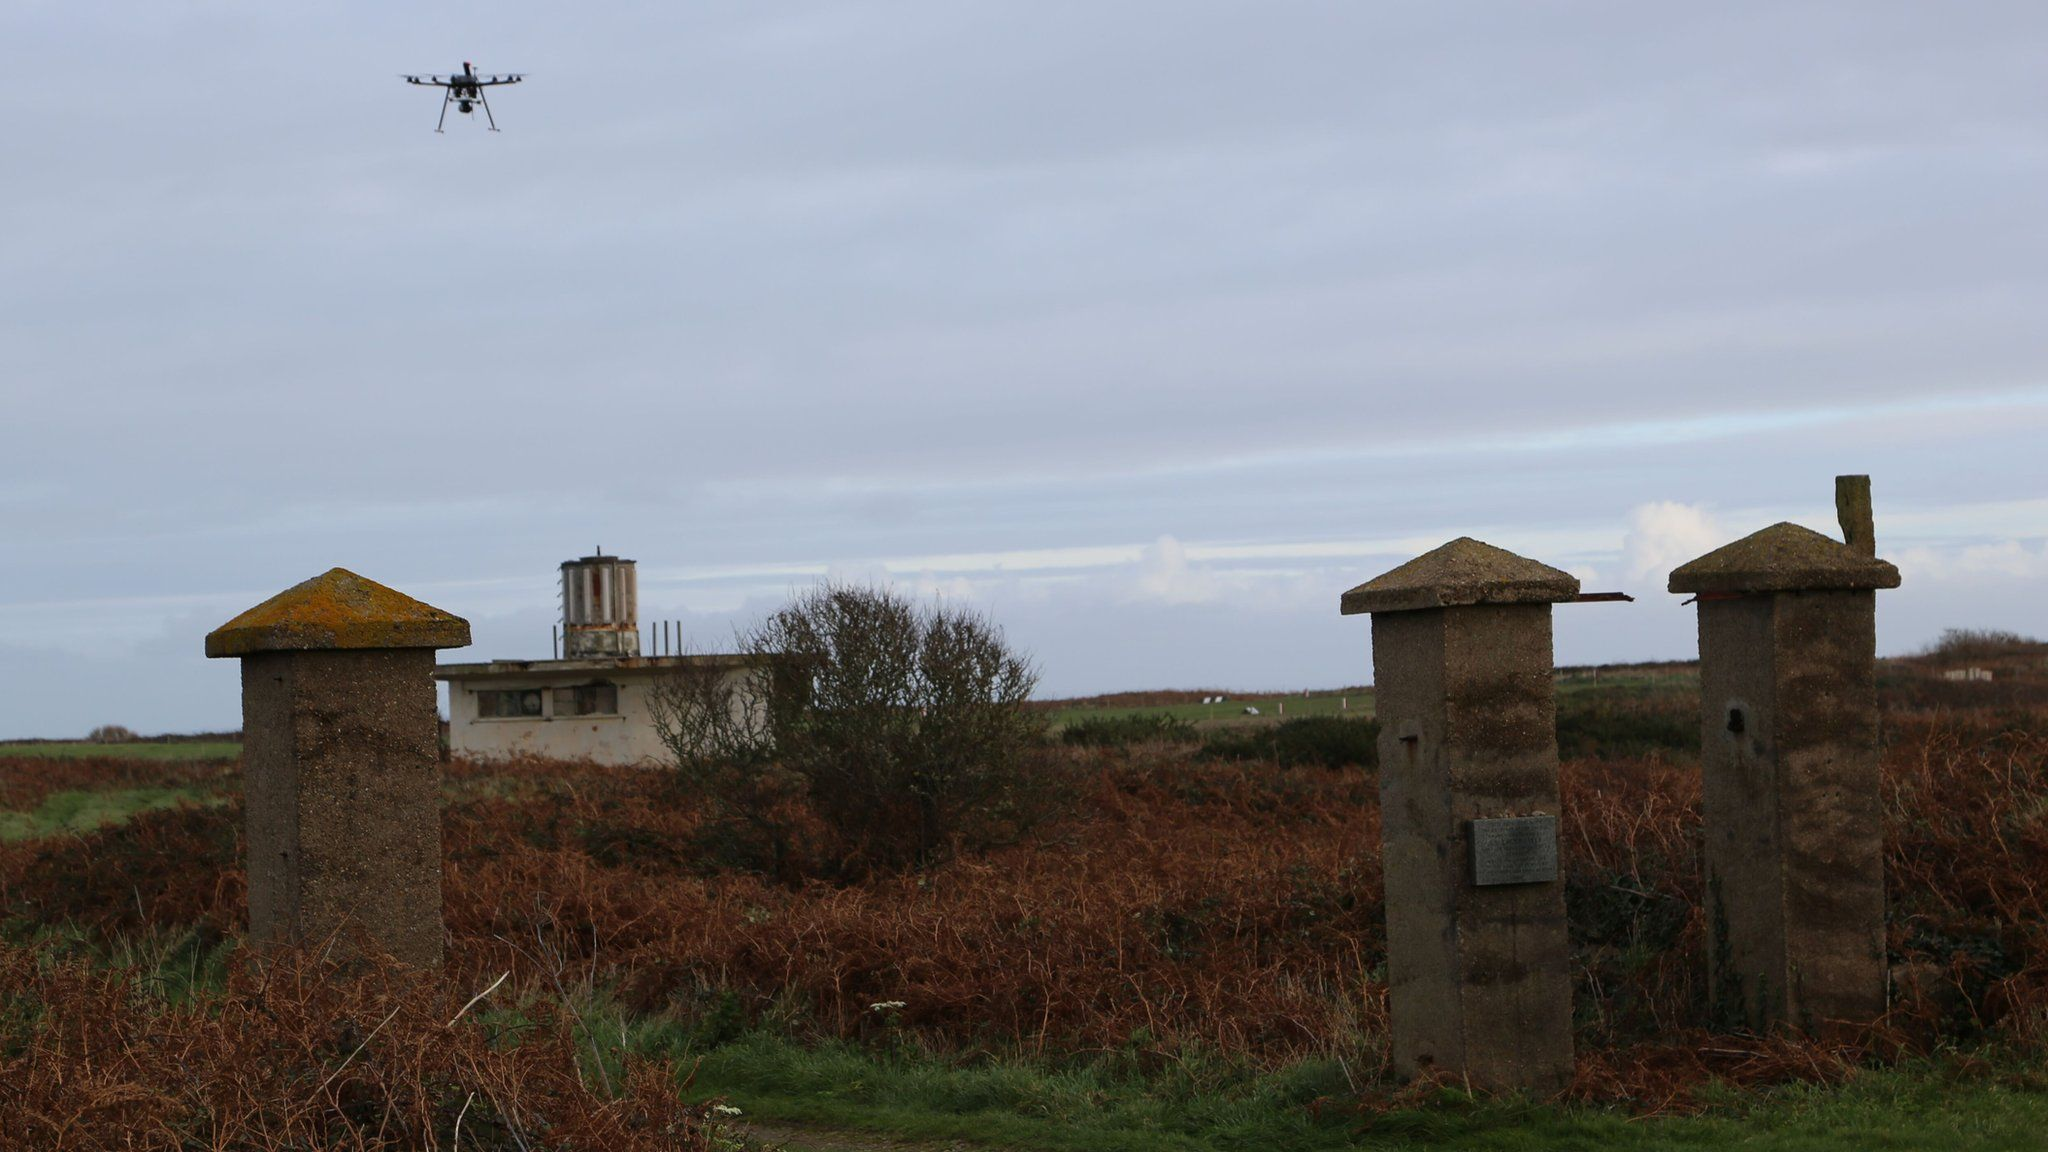 A survey drone over the remains of the main gates of the concentration camp